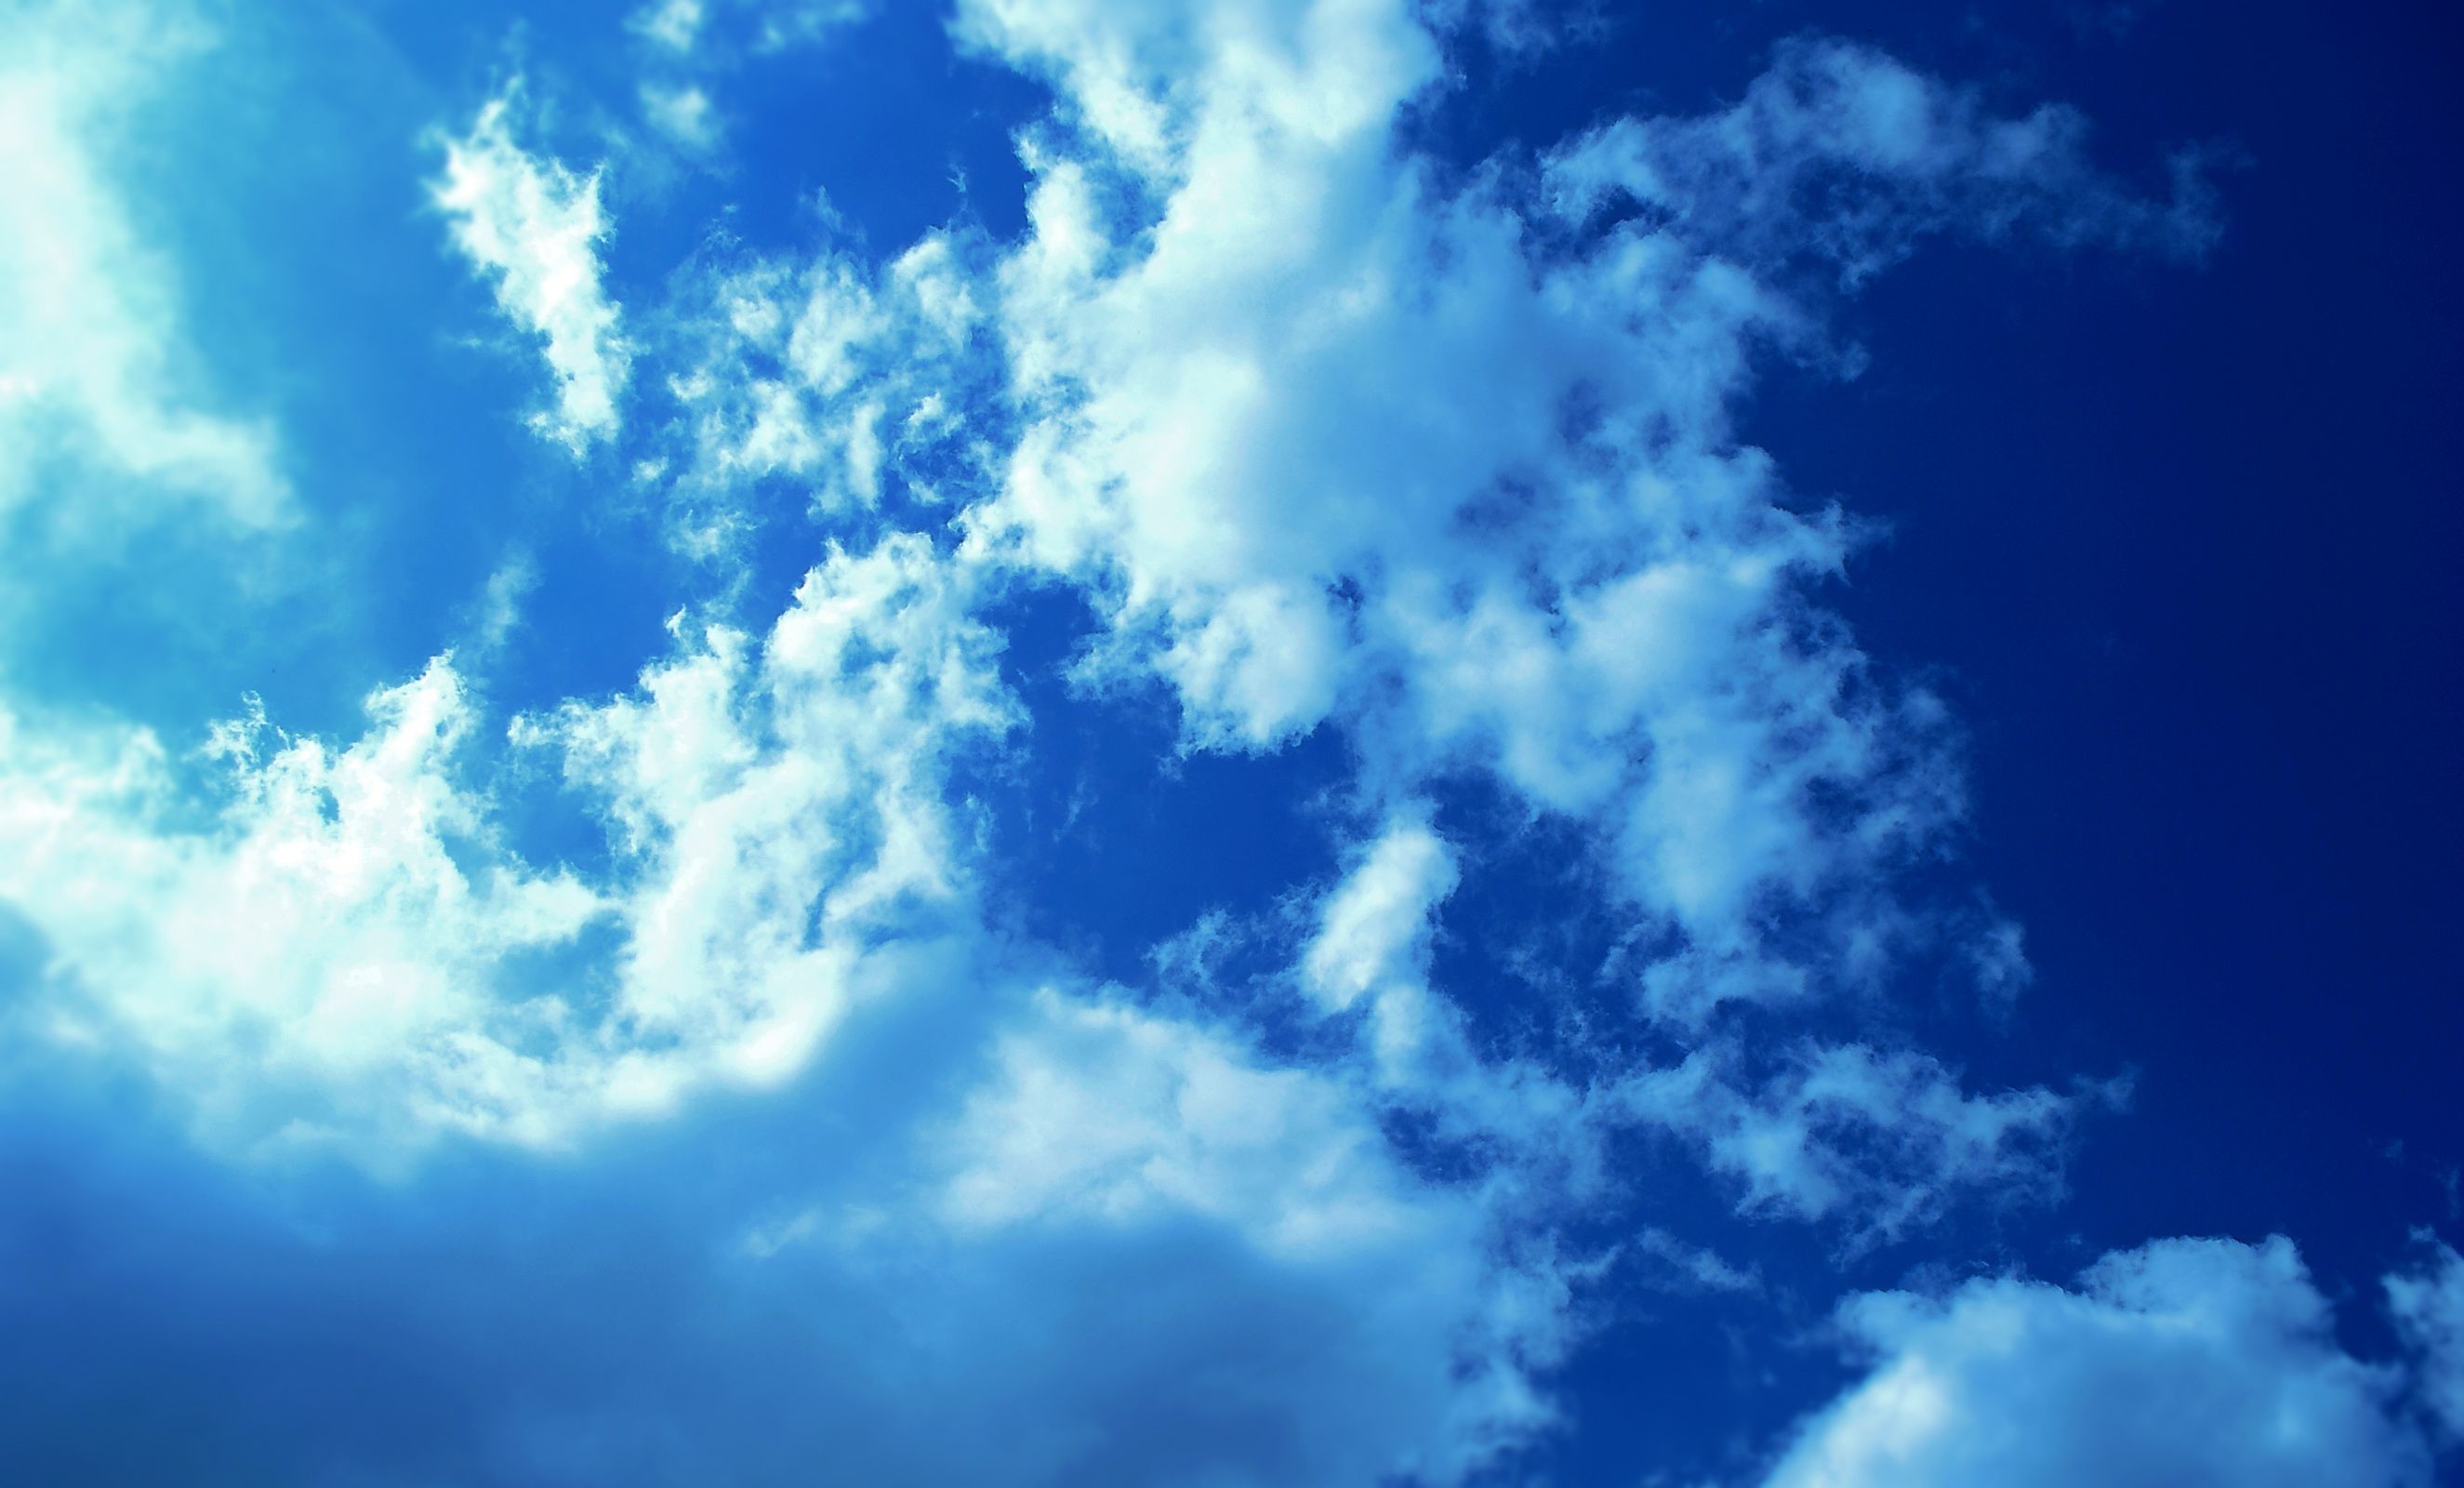 2650x1600 Sky Blue Hd Wallpaper - image #811128